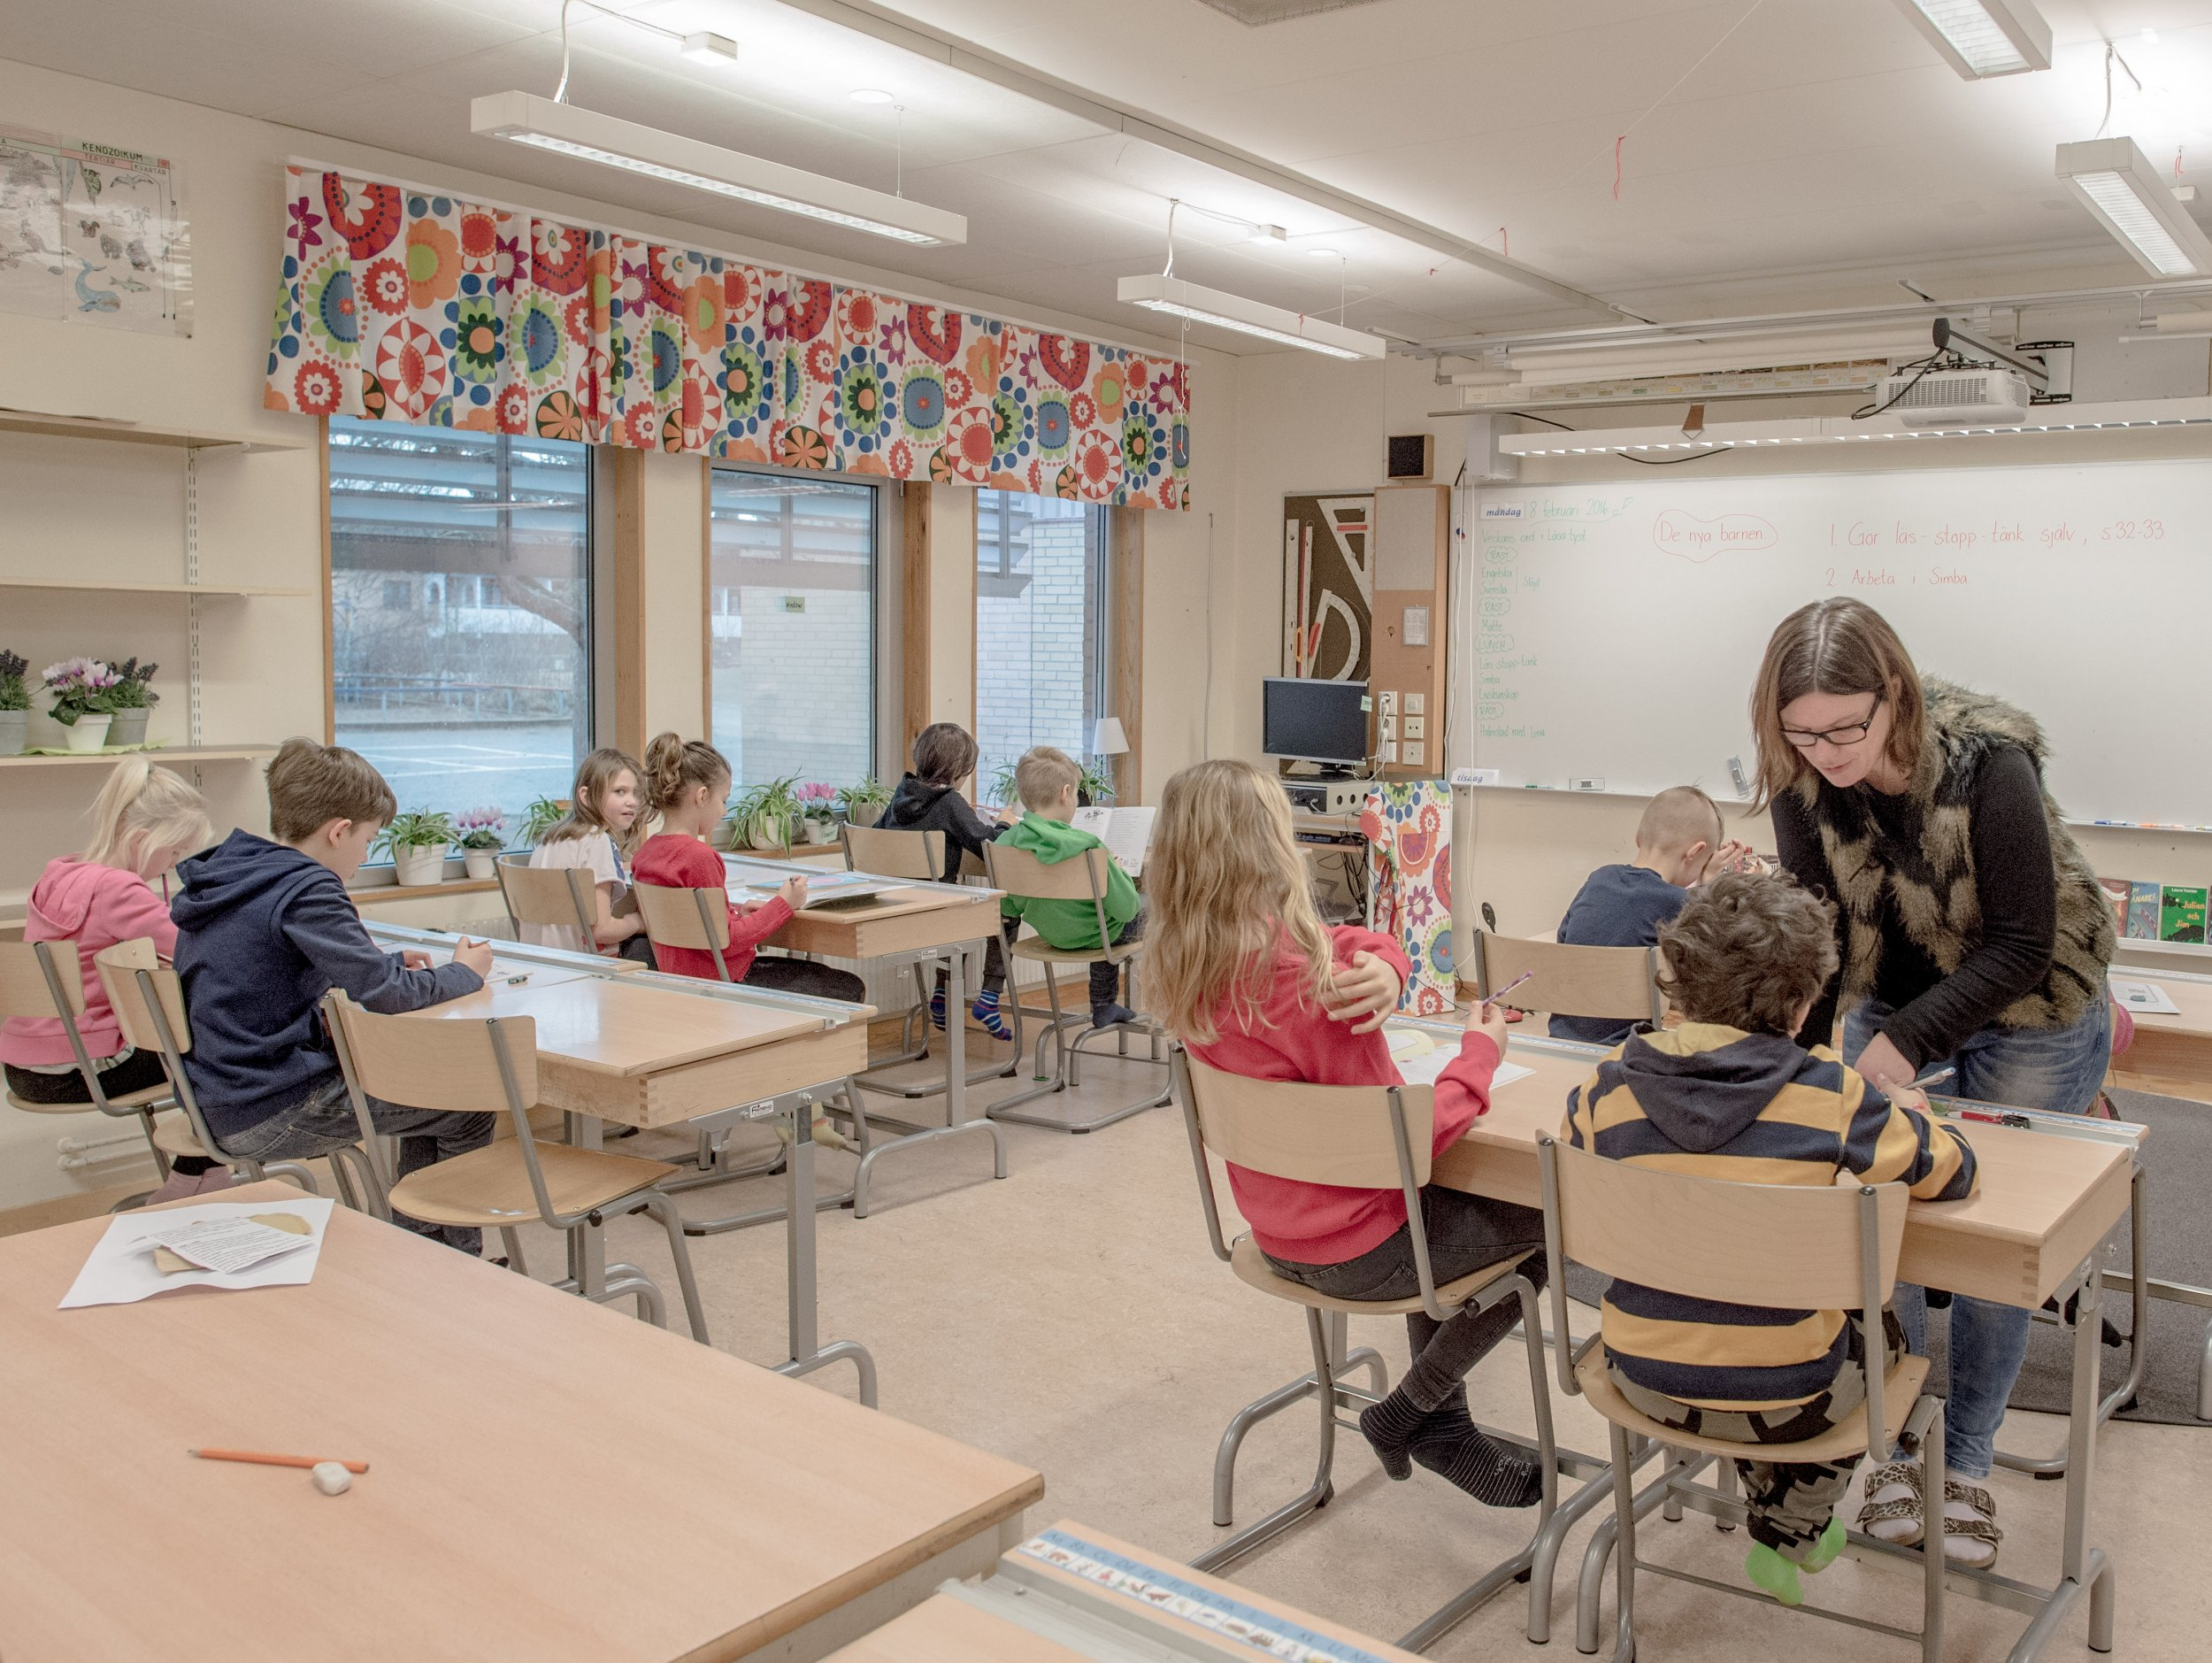 Swedish School Separates Boys and Girls to 'Boost Confidence'